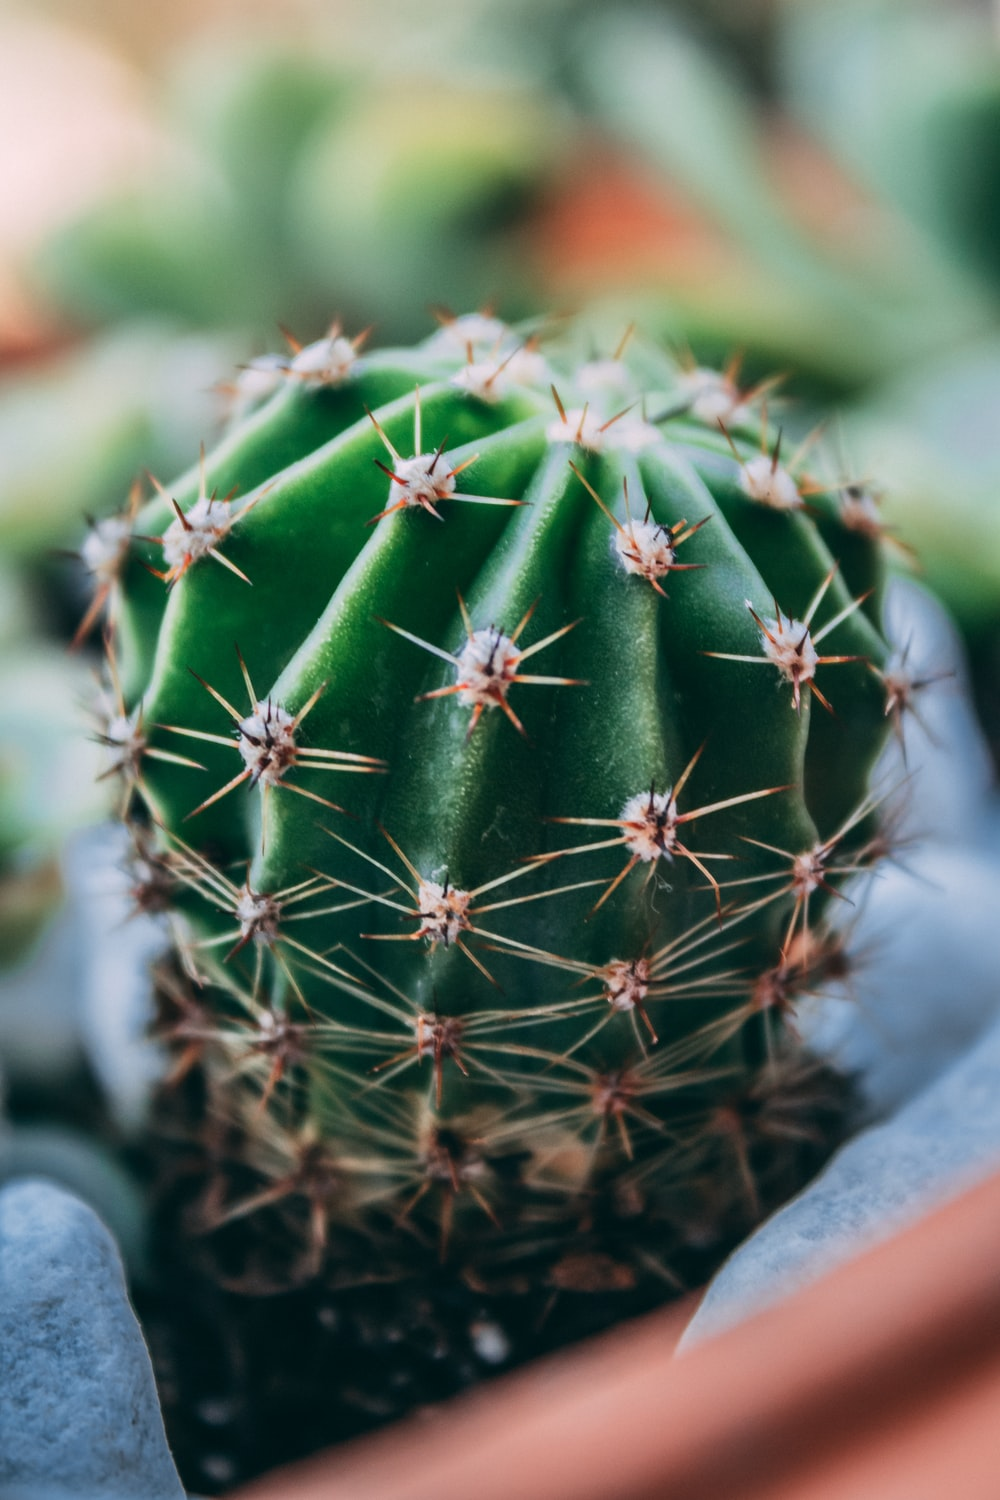 green cactus in close up photography